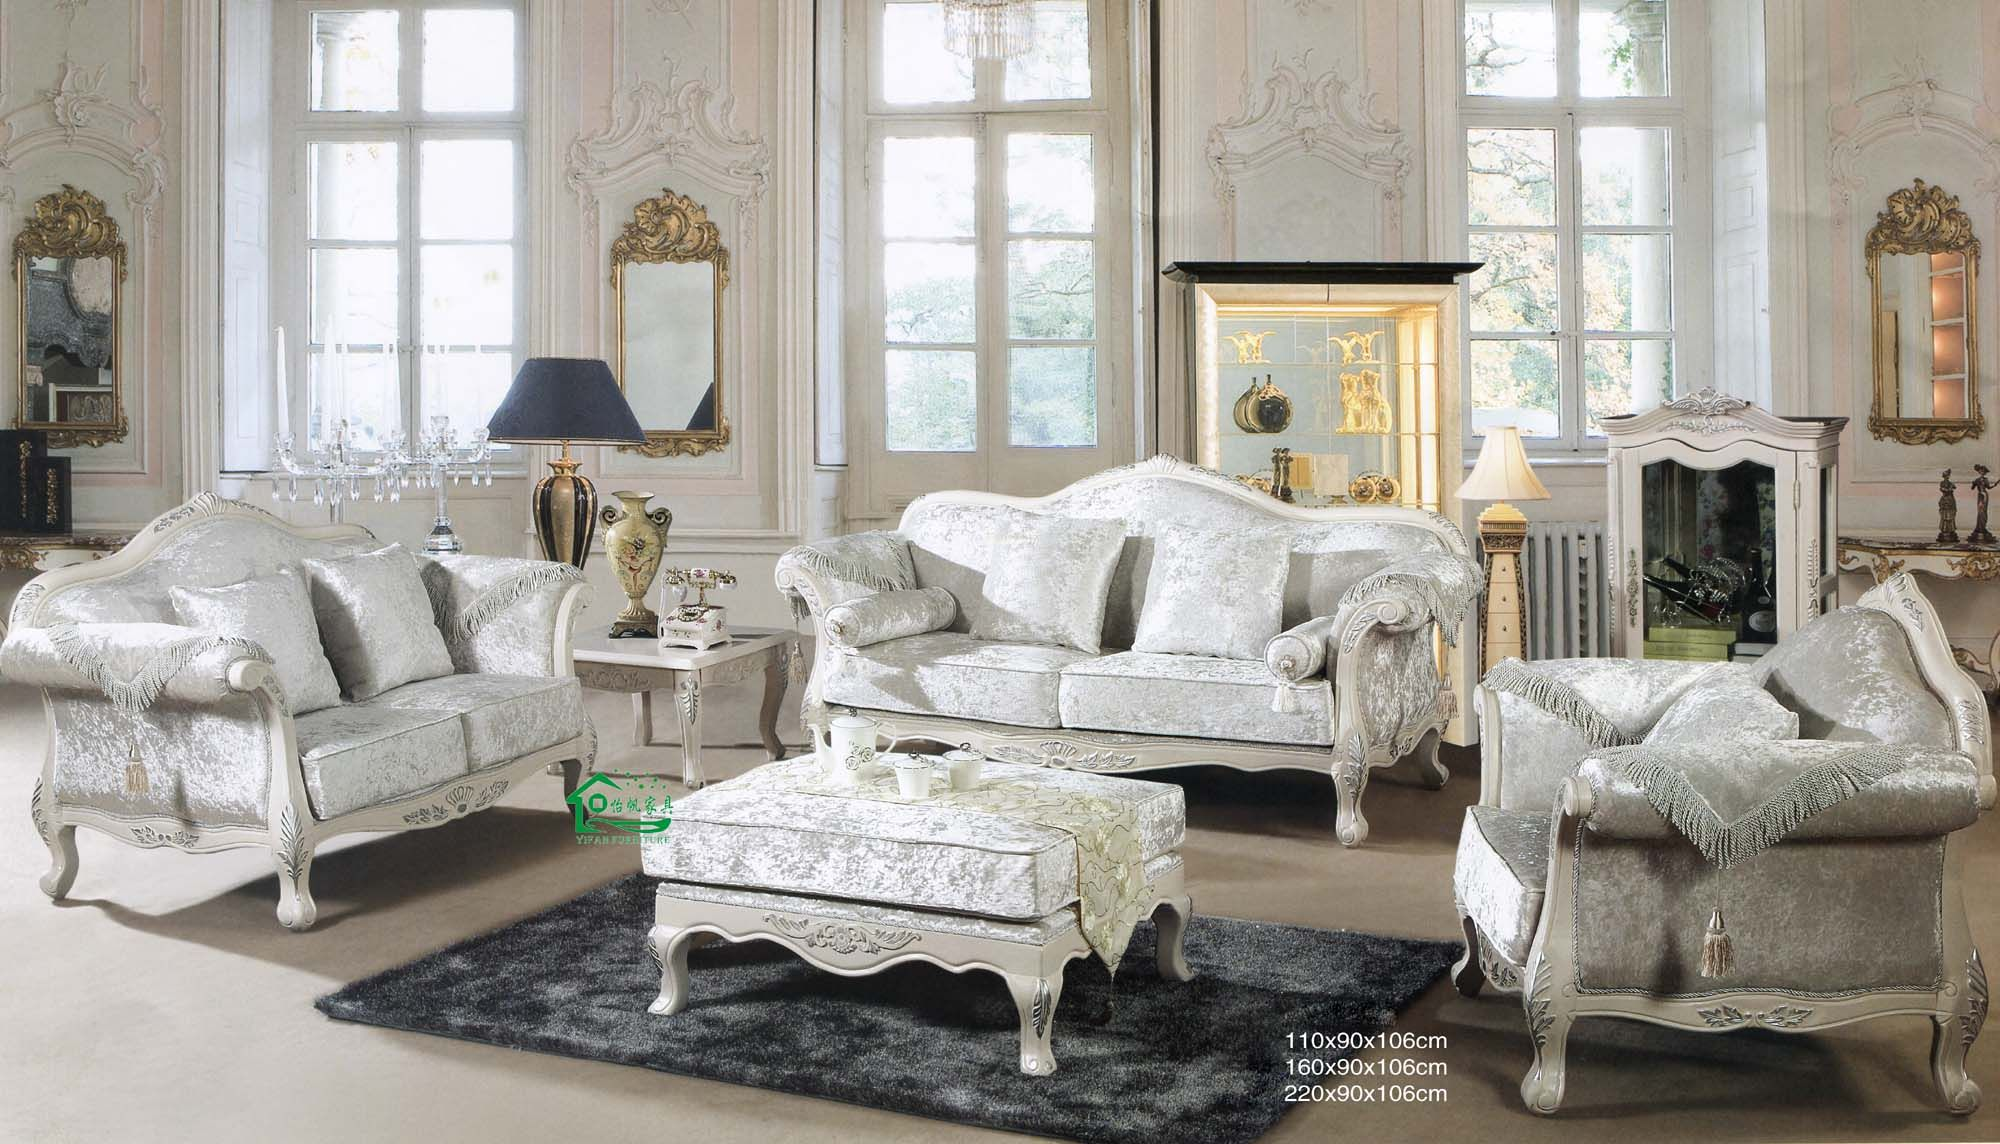 Customized Classic Furniture  In Dubai Across Uae Call 0566 00 9626 Egyptian_classic Furniture_furniture_affordable  Furniture Rochester Accent Sofa Nyc Mid  ...